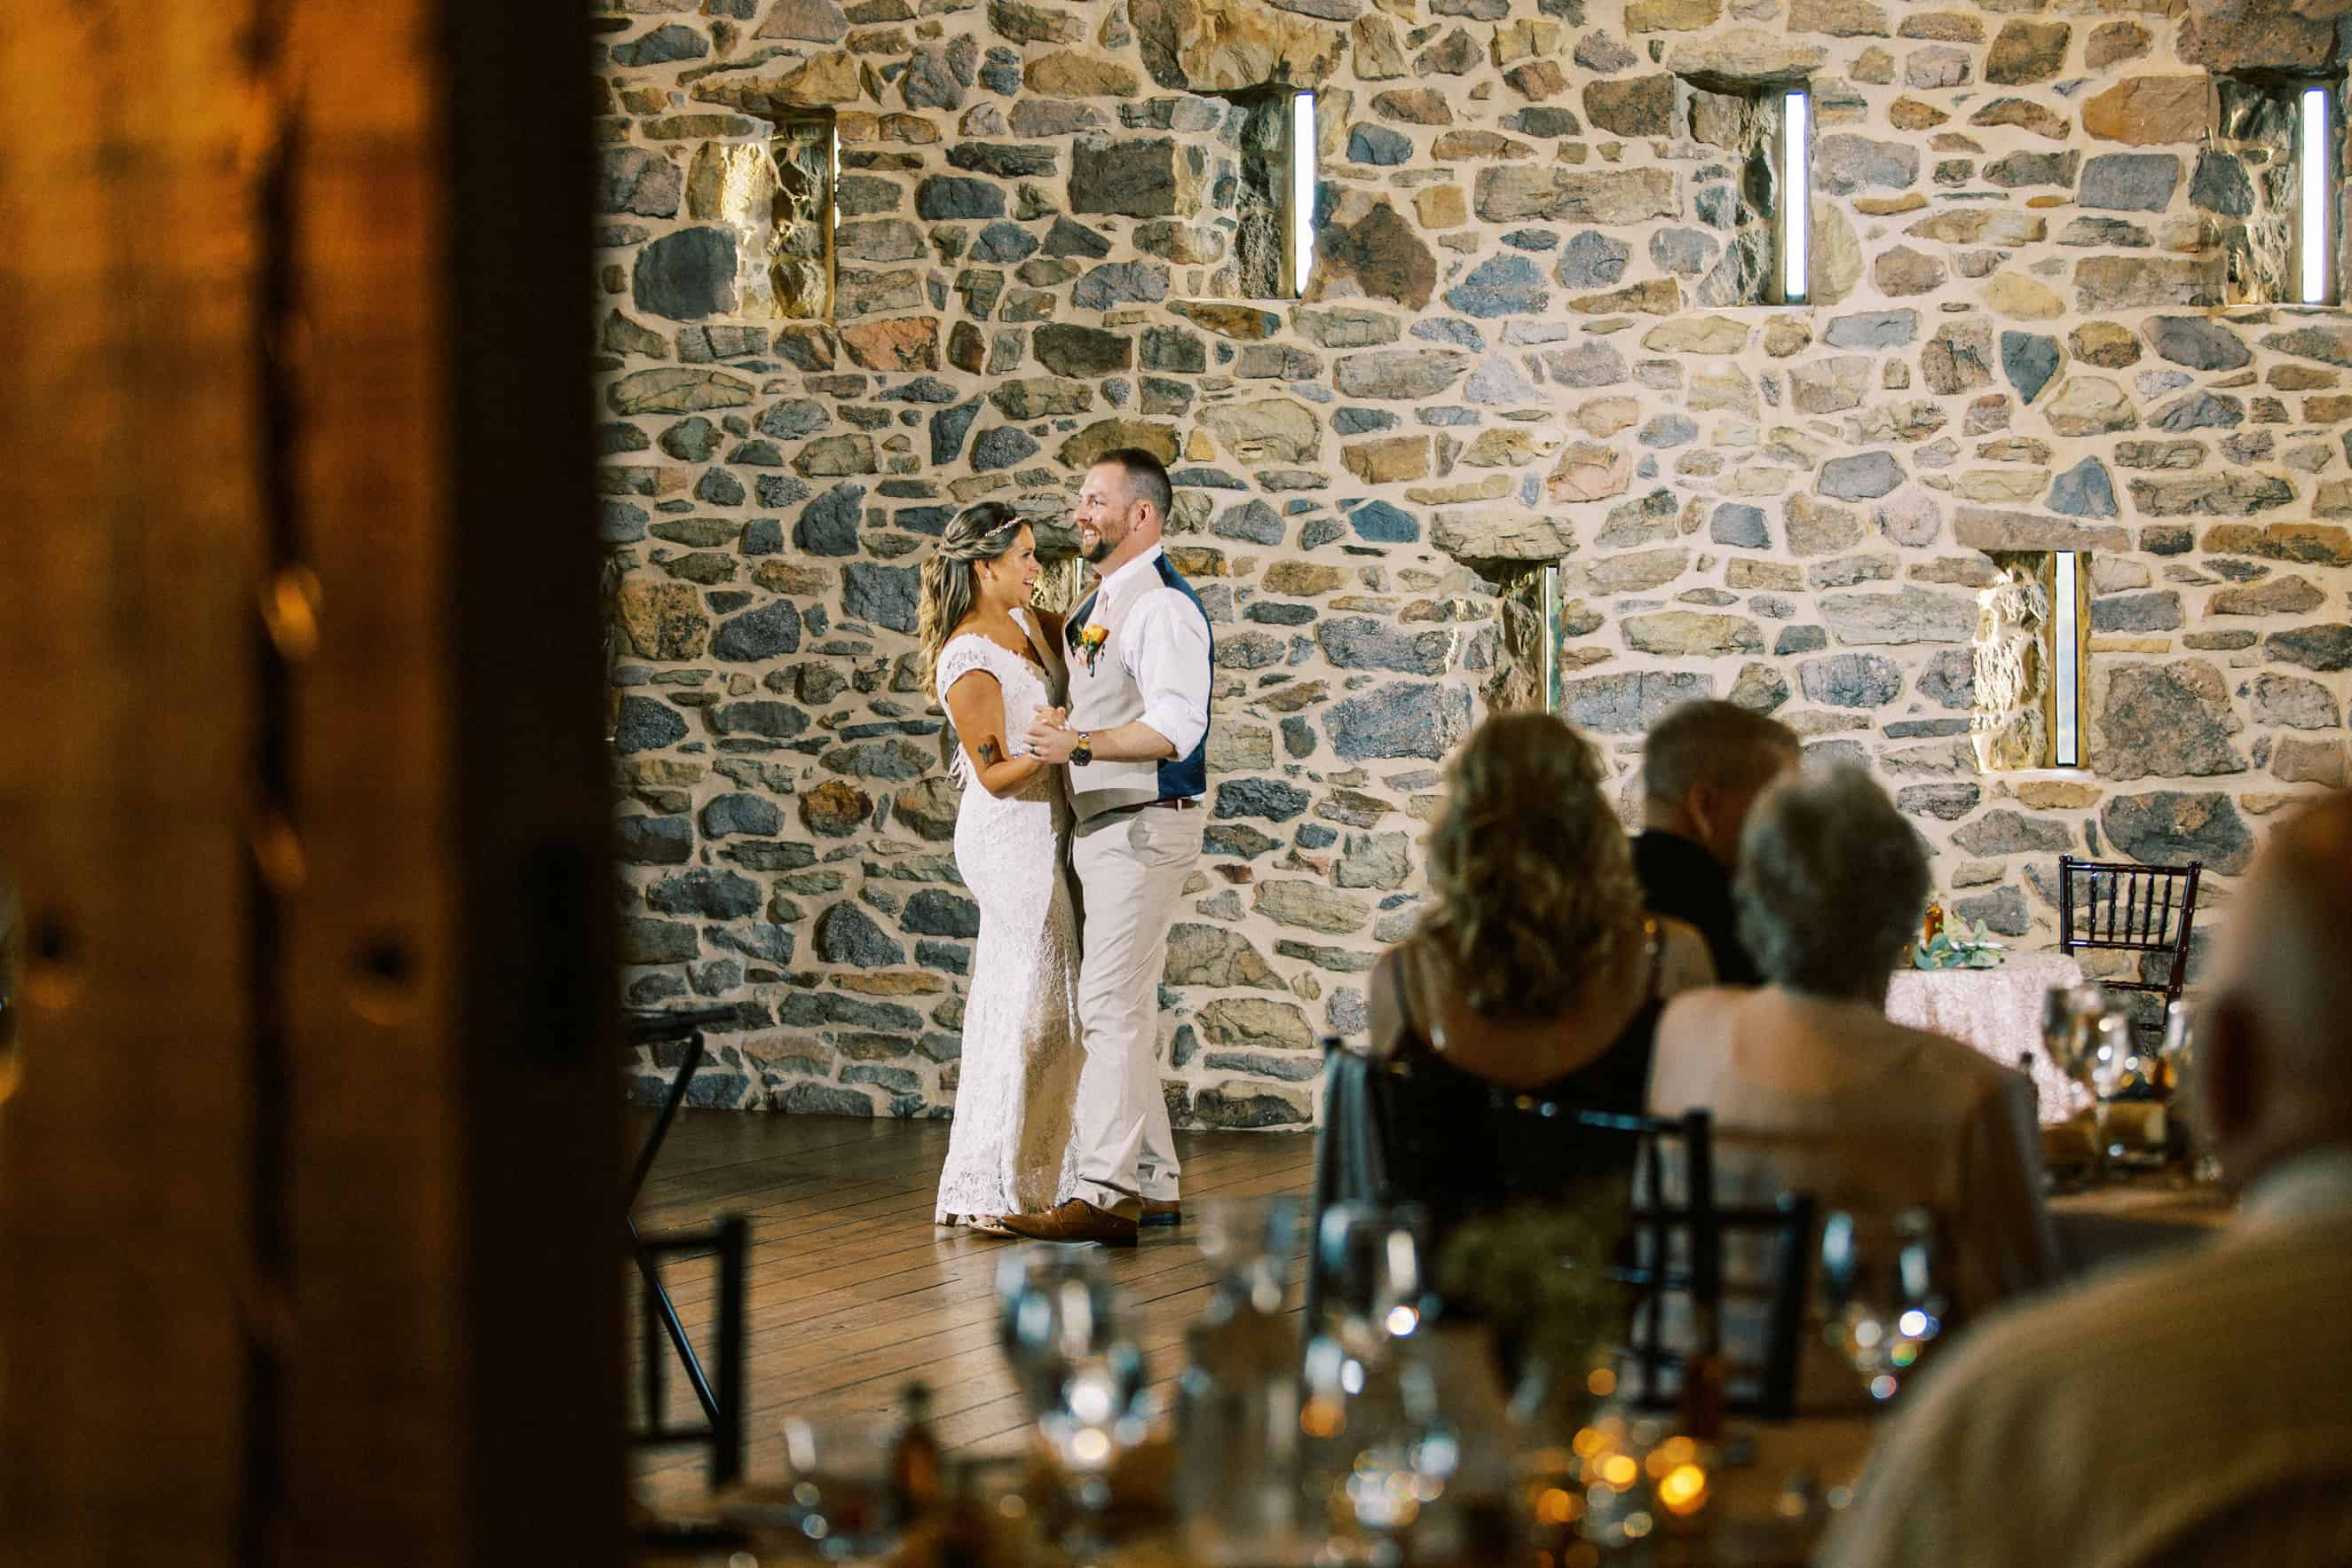 Harvest View at Hershey Farms Wedding Receptions